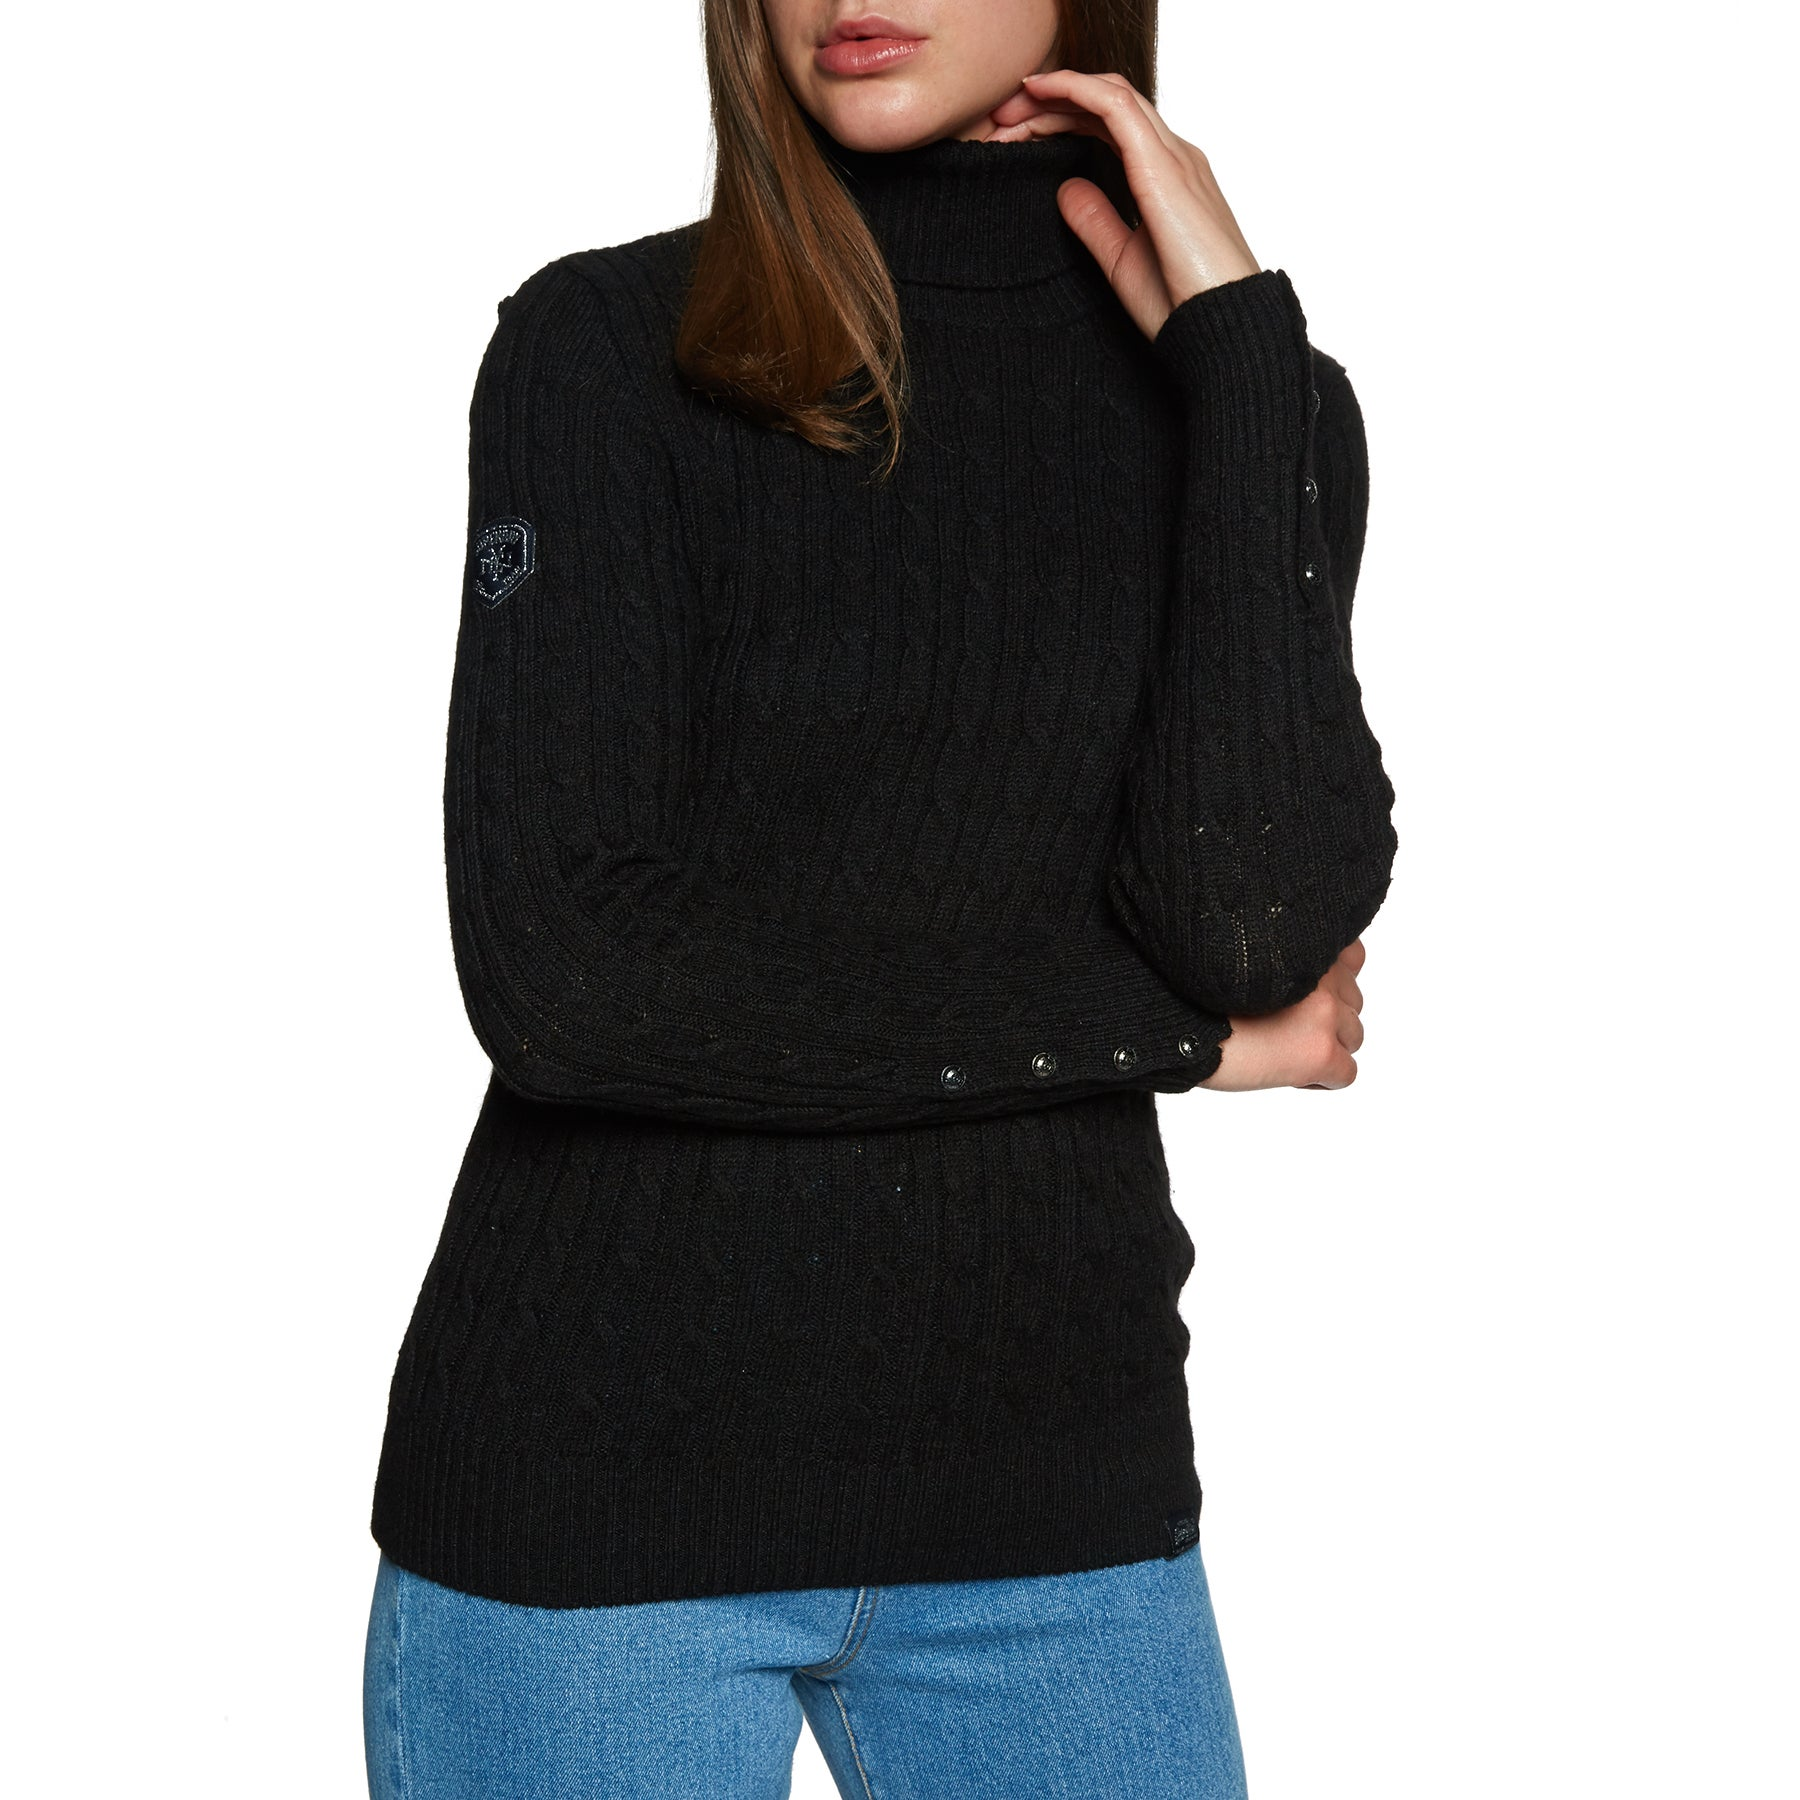 Superdry Croyde Roll Neck Cable Knit Womens Knits - Black